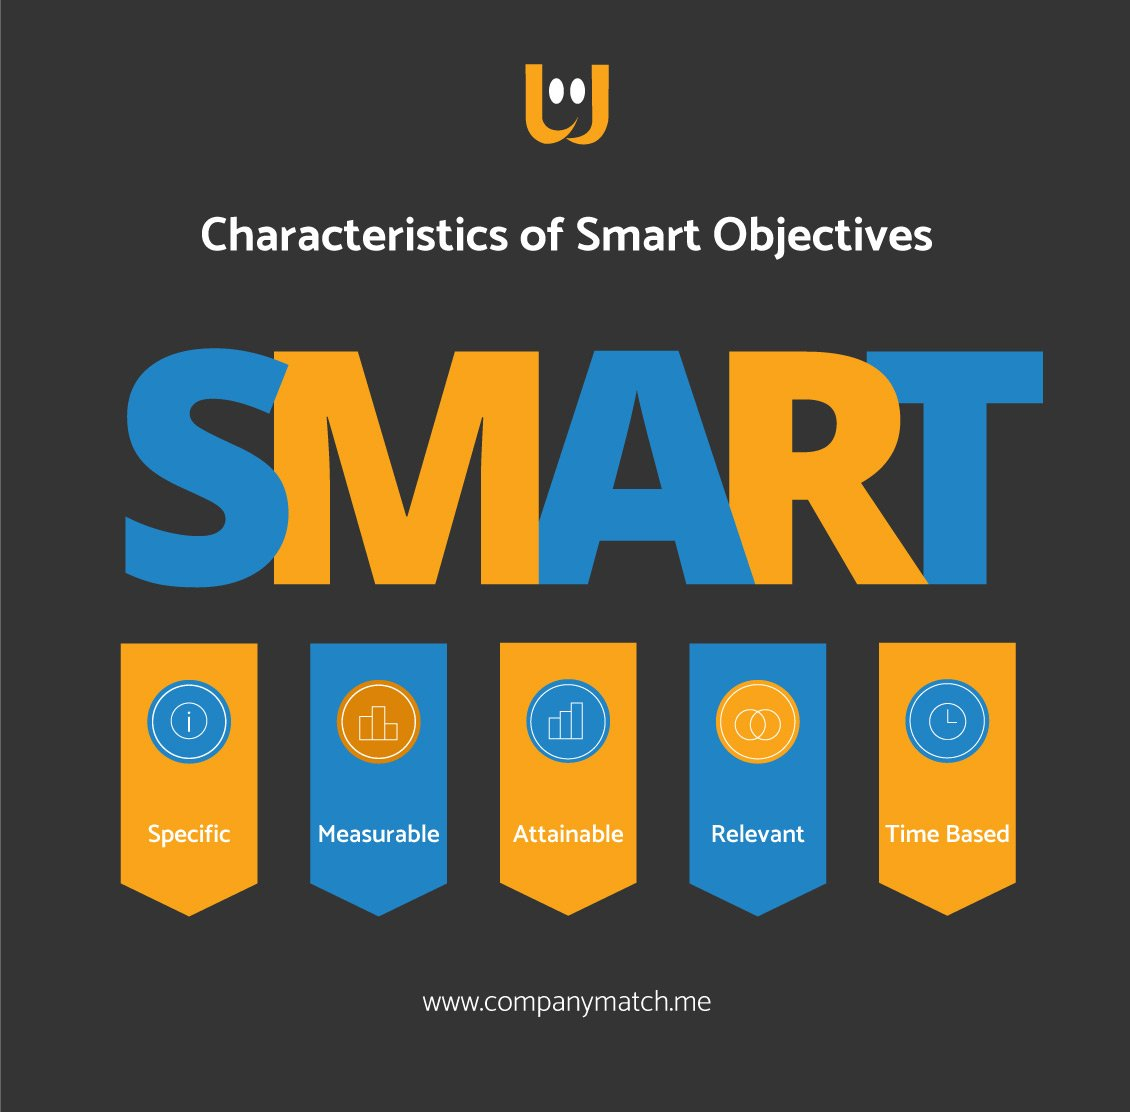 Characteristics of Smart Objectives